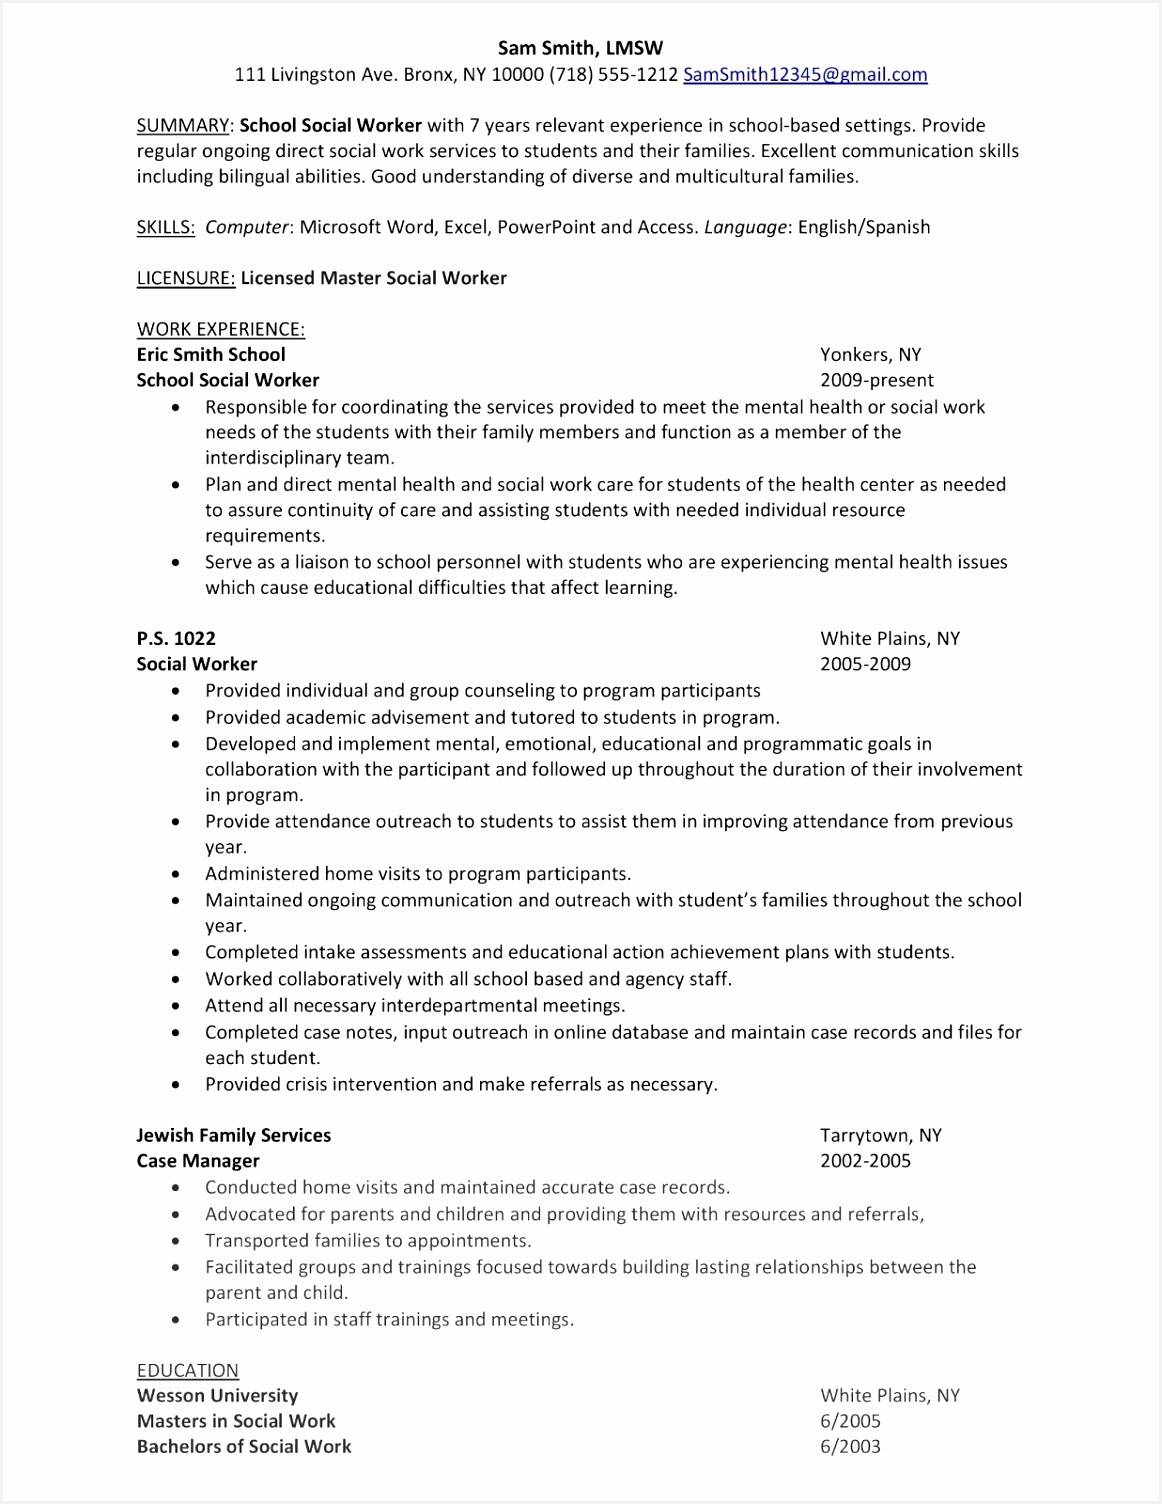 4 Child Protection Worker Sample Resume Kcghdh Free